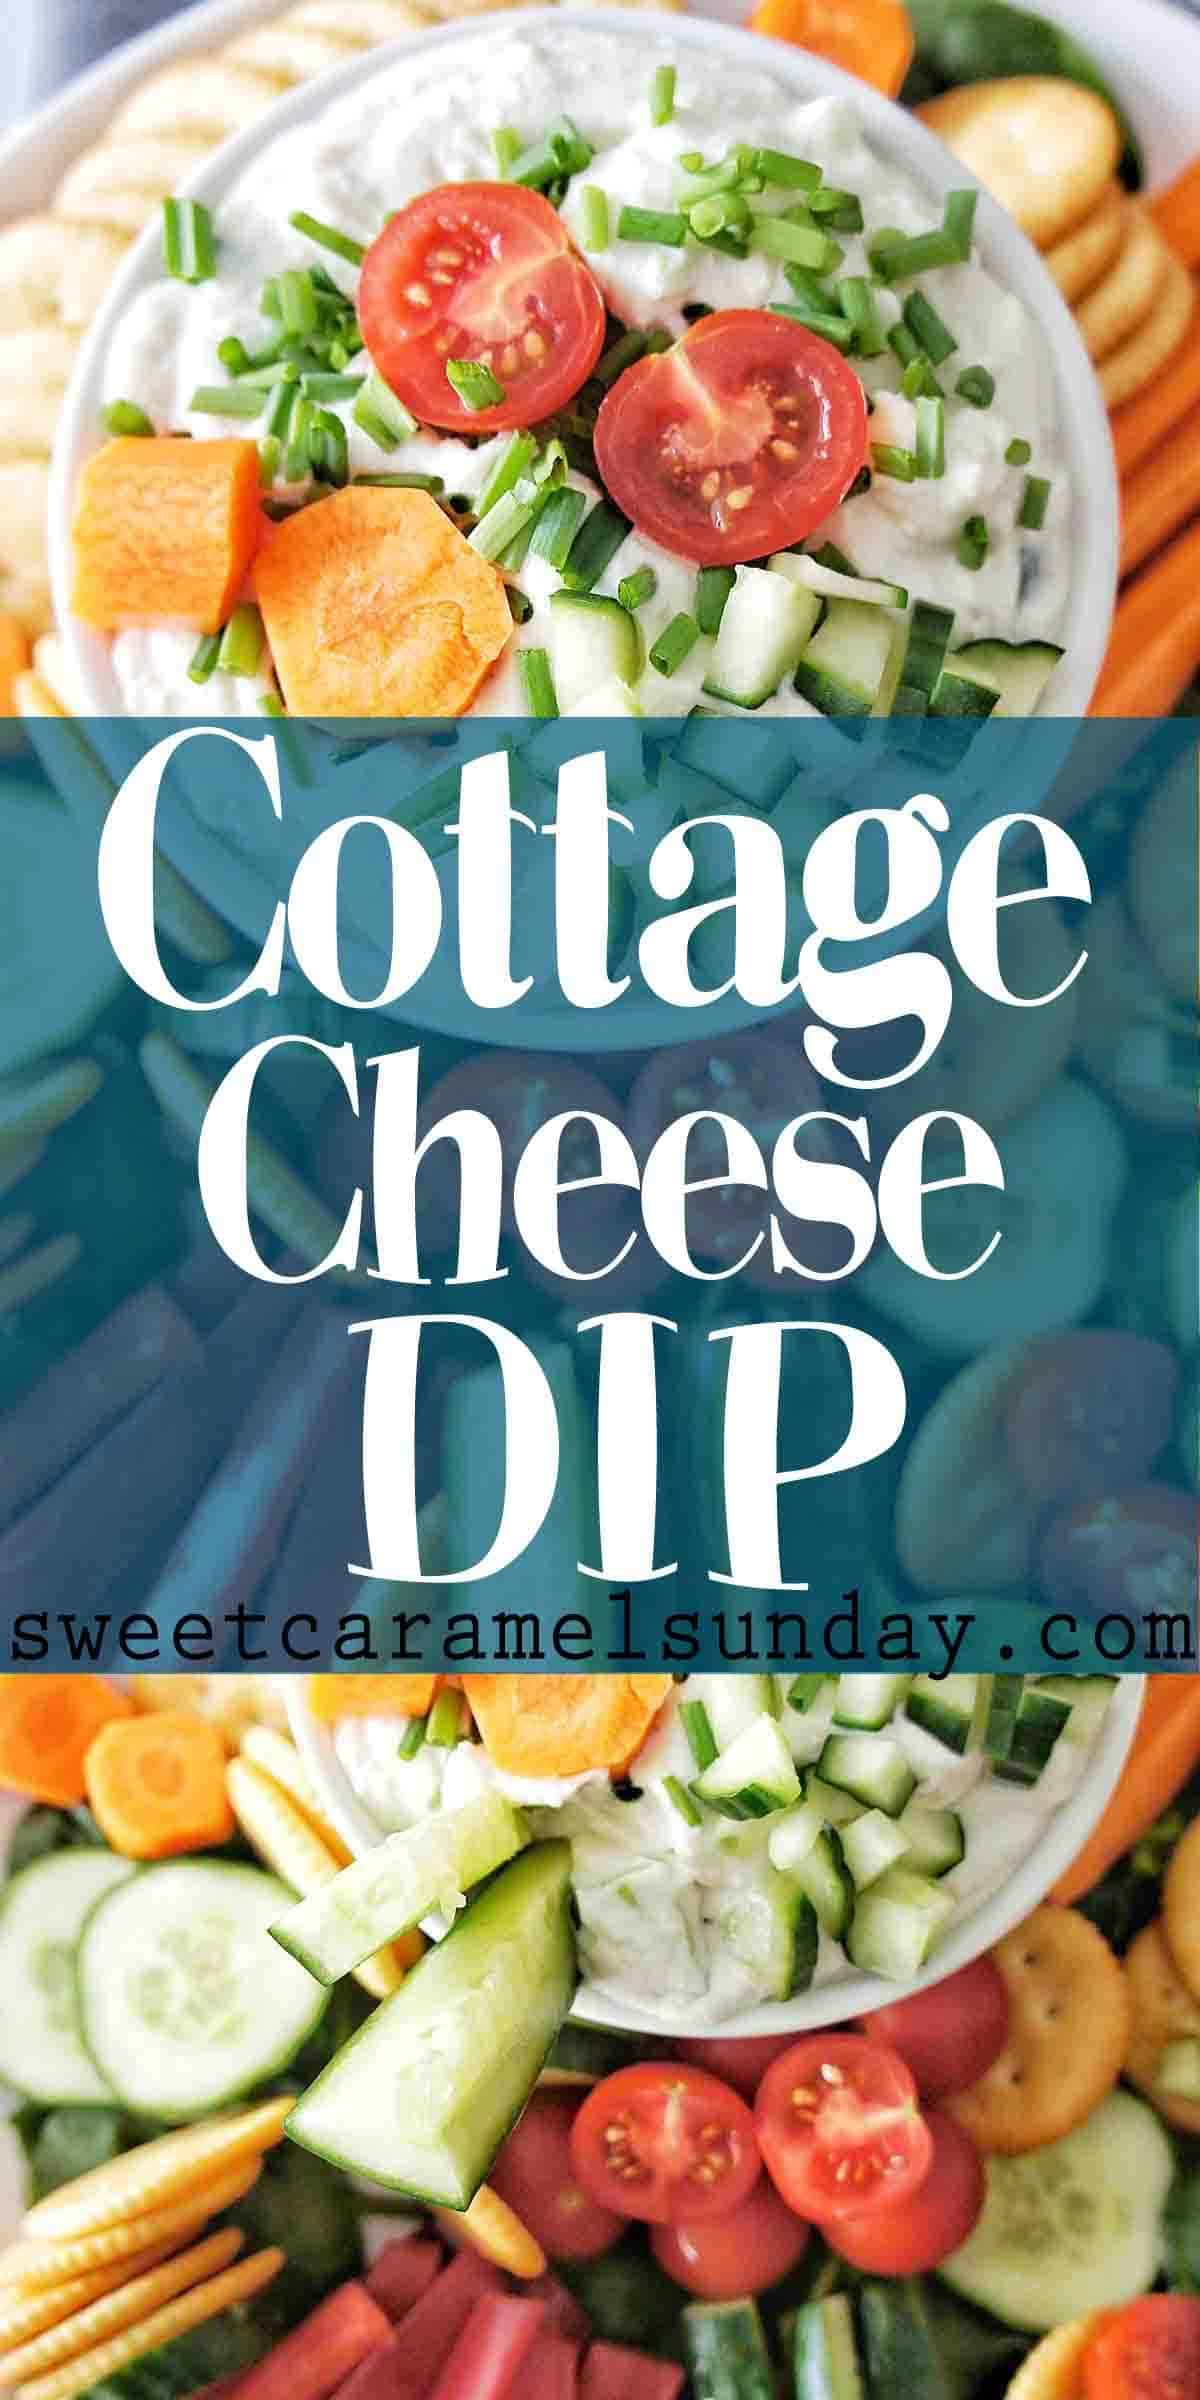 Cottage Cheese Dip with text overlay